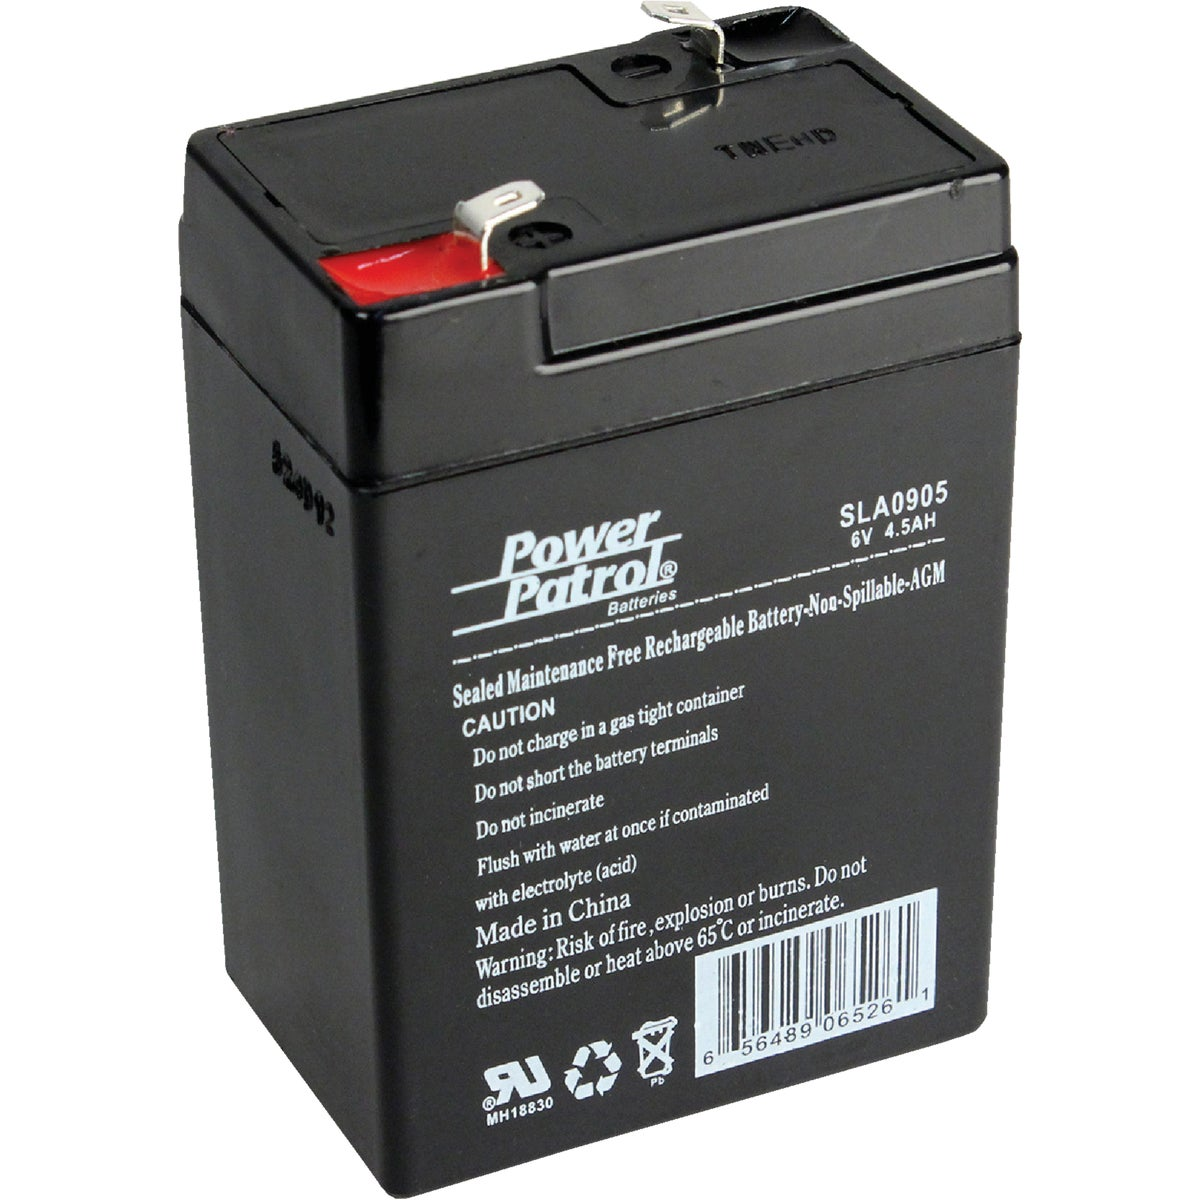 SLA 6V 4AMP BATTERY